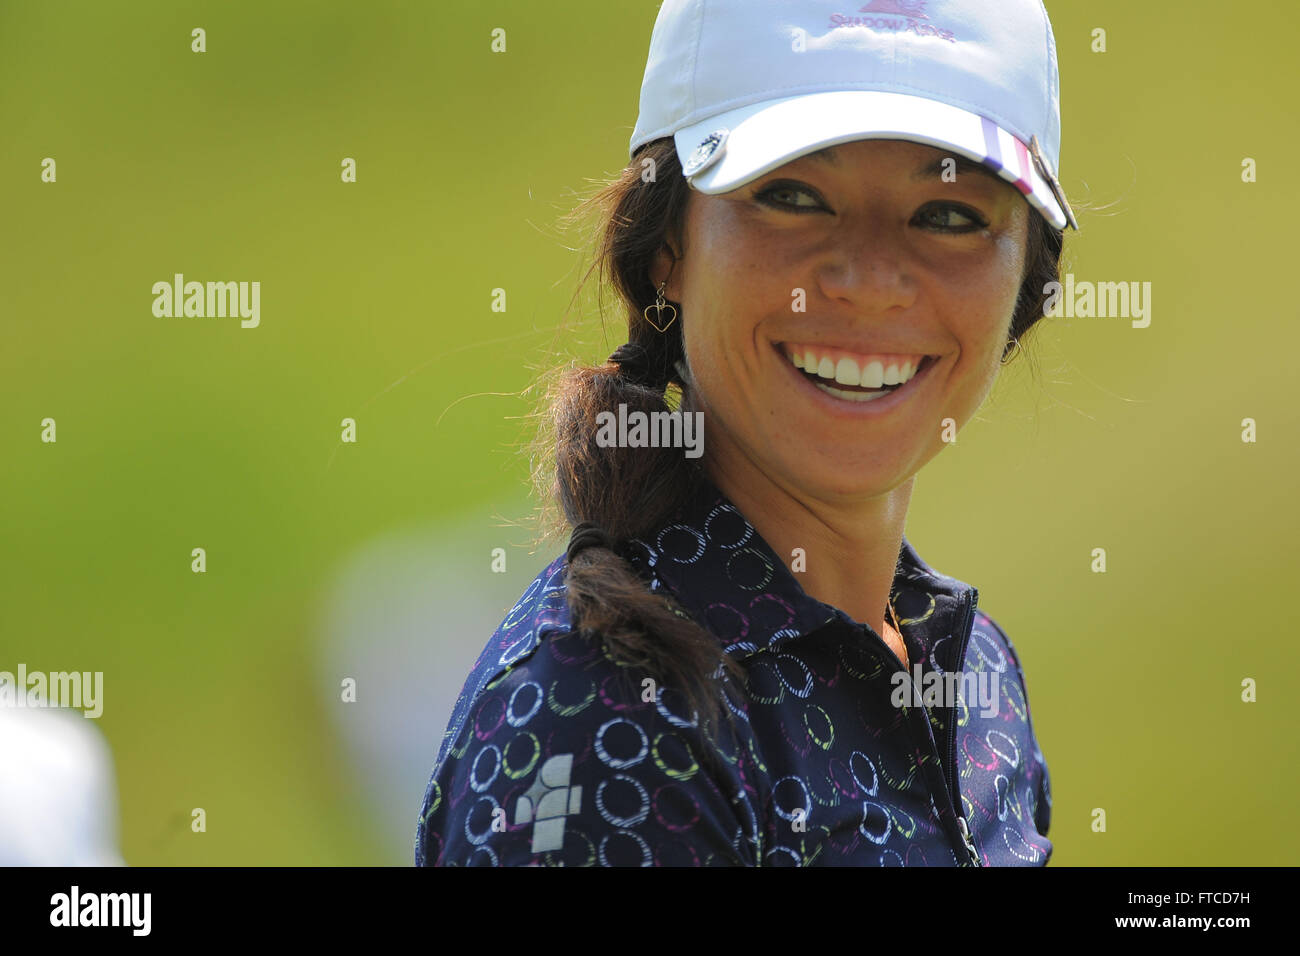 Kohler, Wis, USA. 4th July, 2012. Kelly Jacques during a practice ...